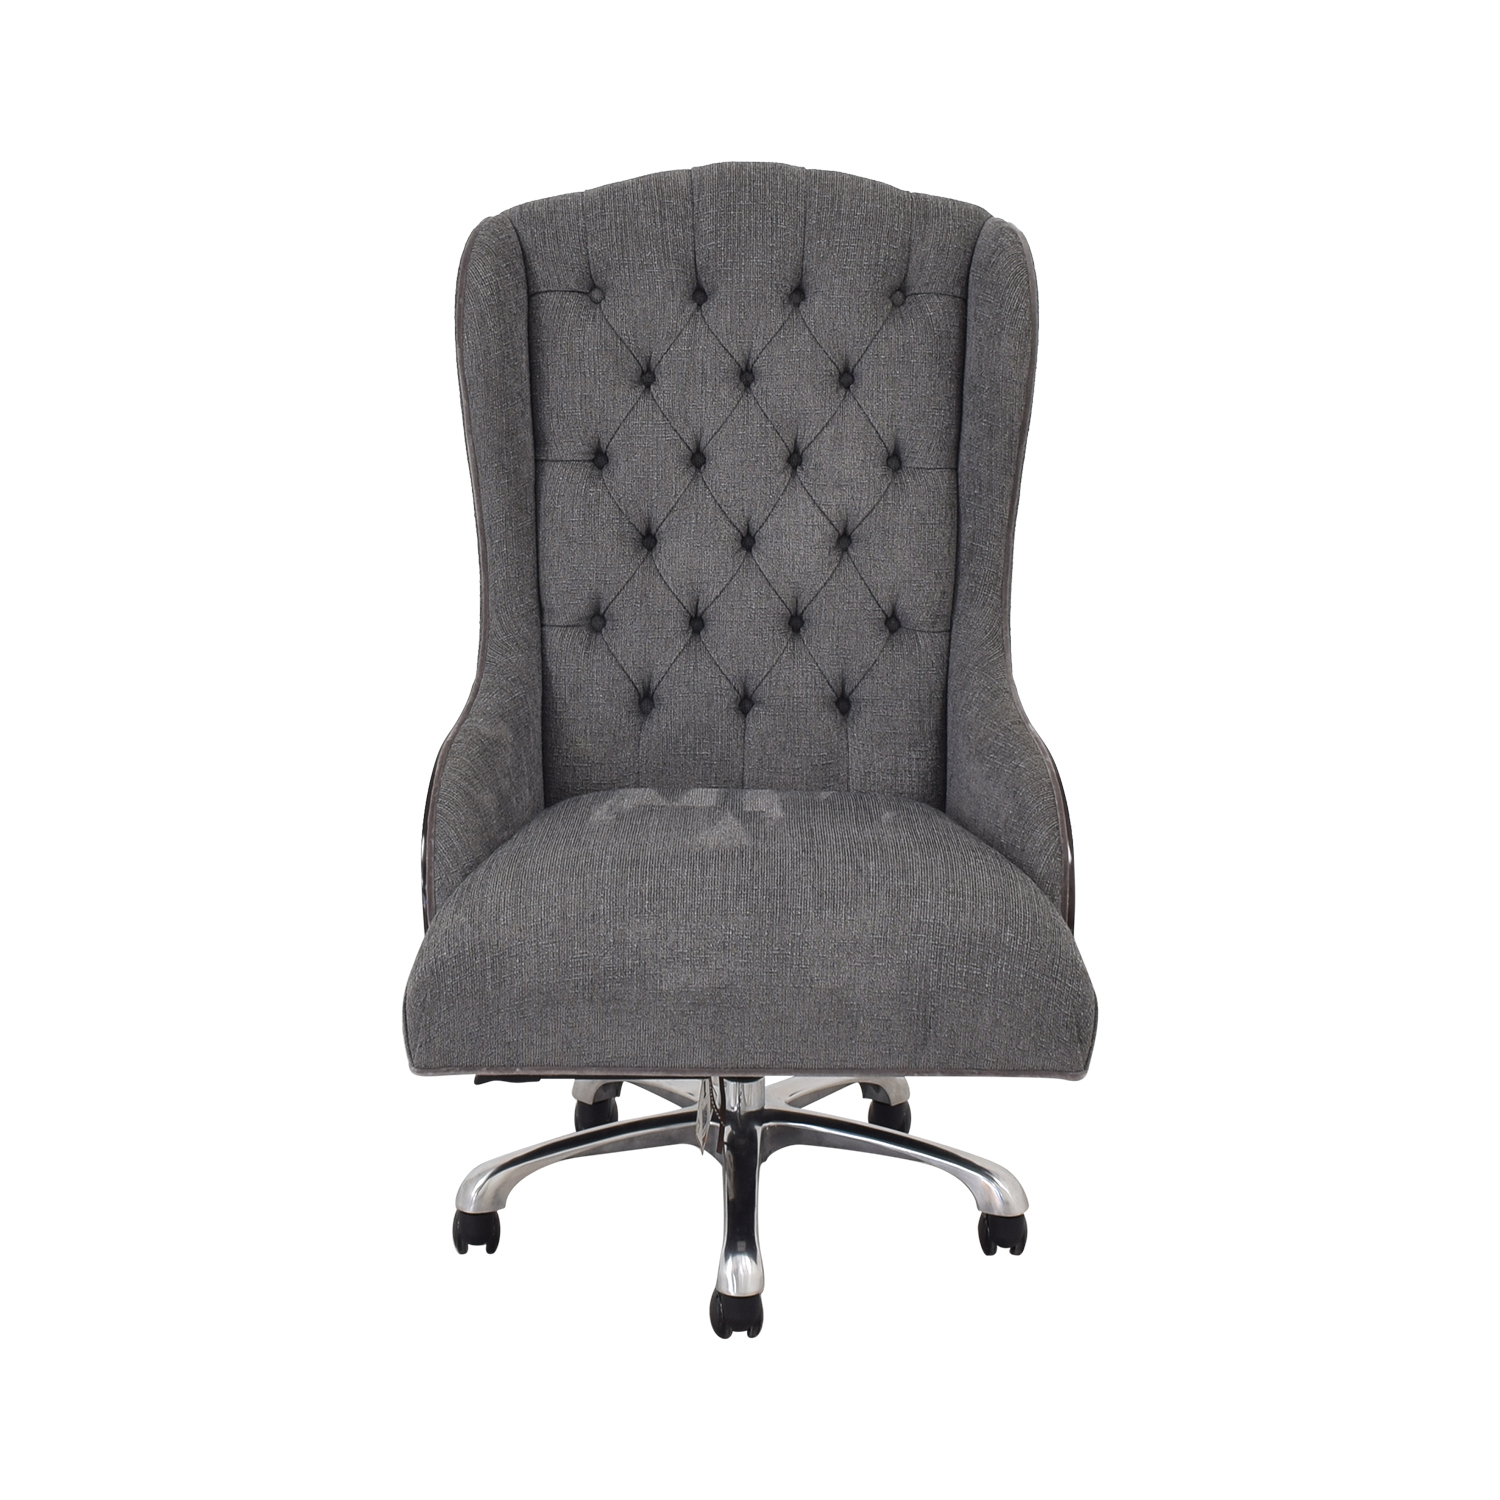 Christopher Guy The Chairman Office Chair / Home Office Chairs